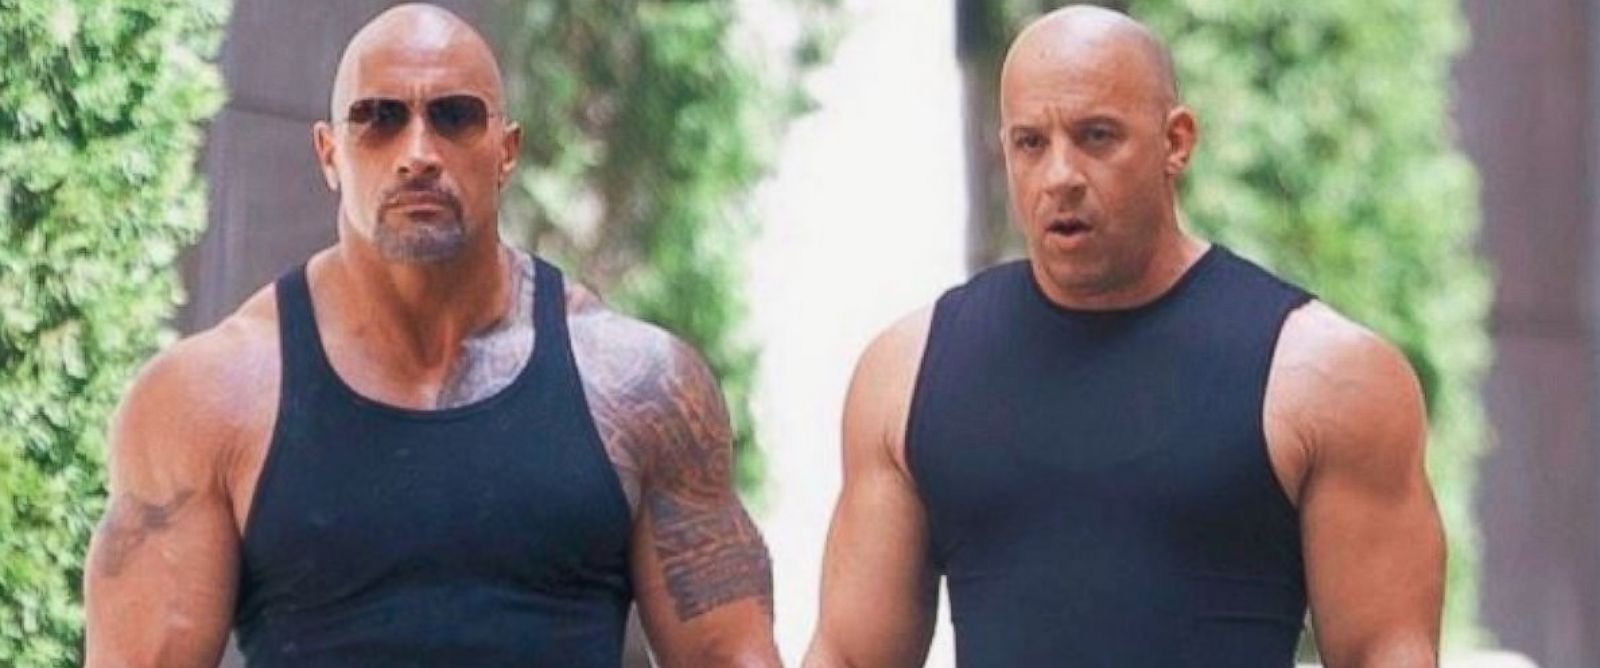 Vin Diesel says he's 'always rooting' for his 'Fast 8' co